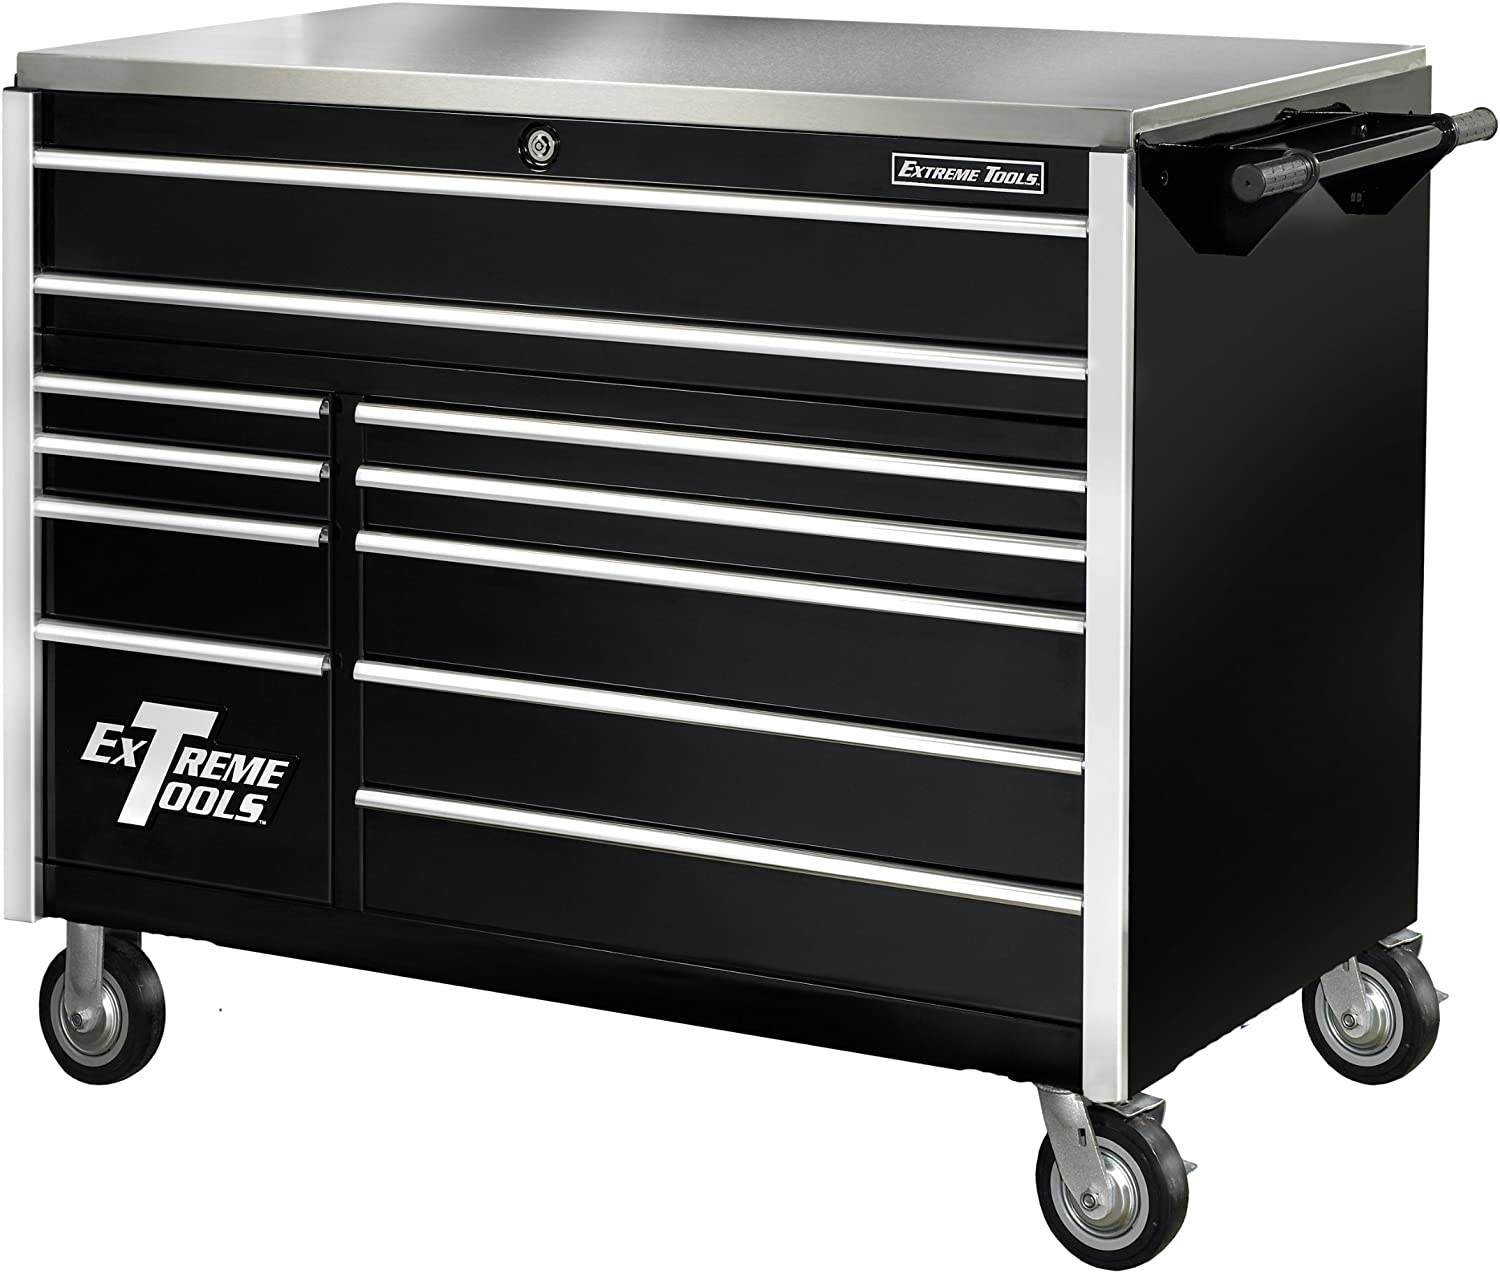 Extreme Tools EX5511RCBK 11-Drawer Roller Cabinet with Security Drawer and Ball Bearing Slides, 55-Inch, Black High Gloss Powder Coat